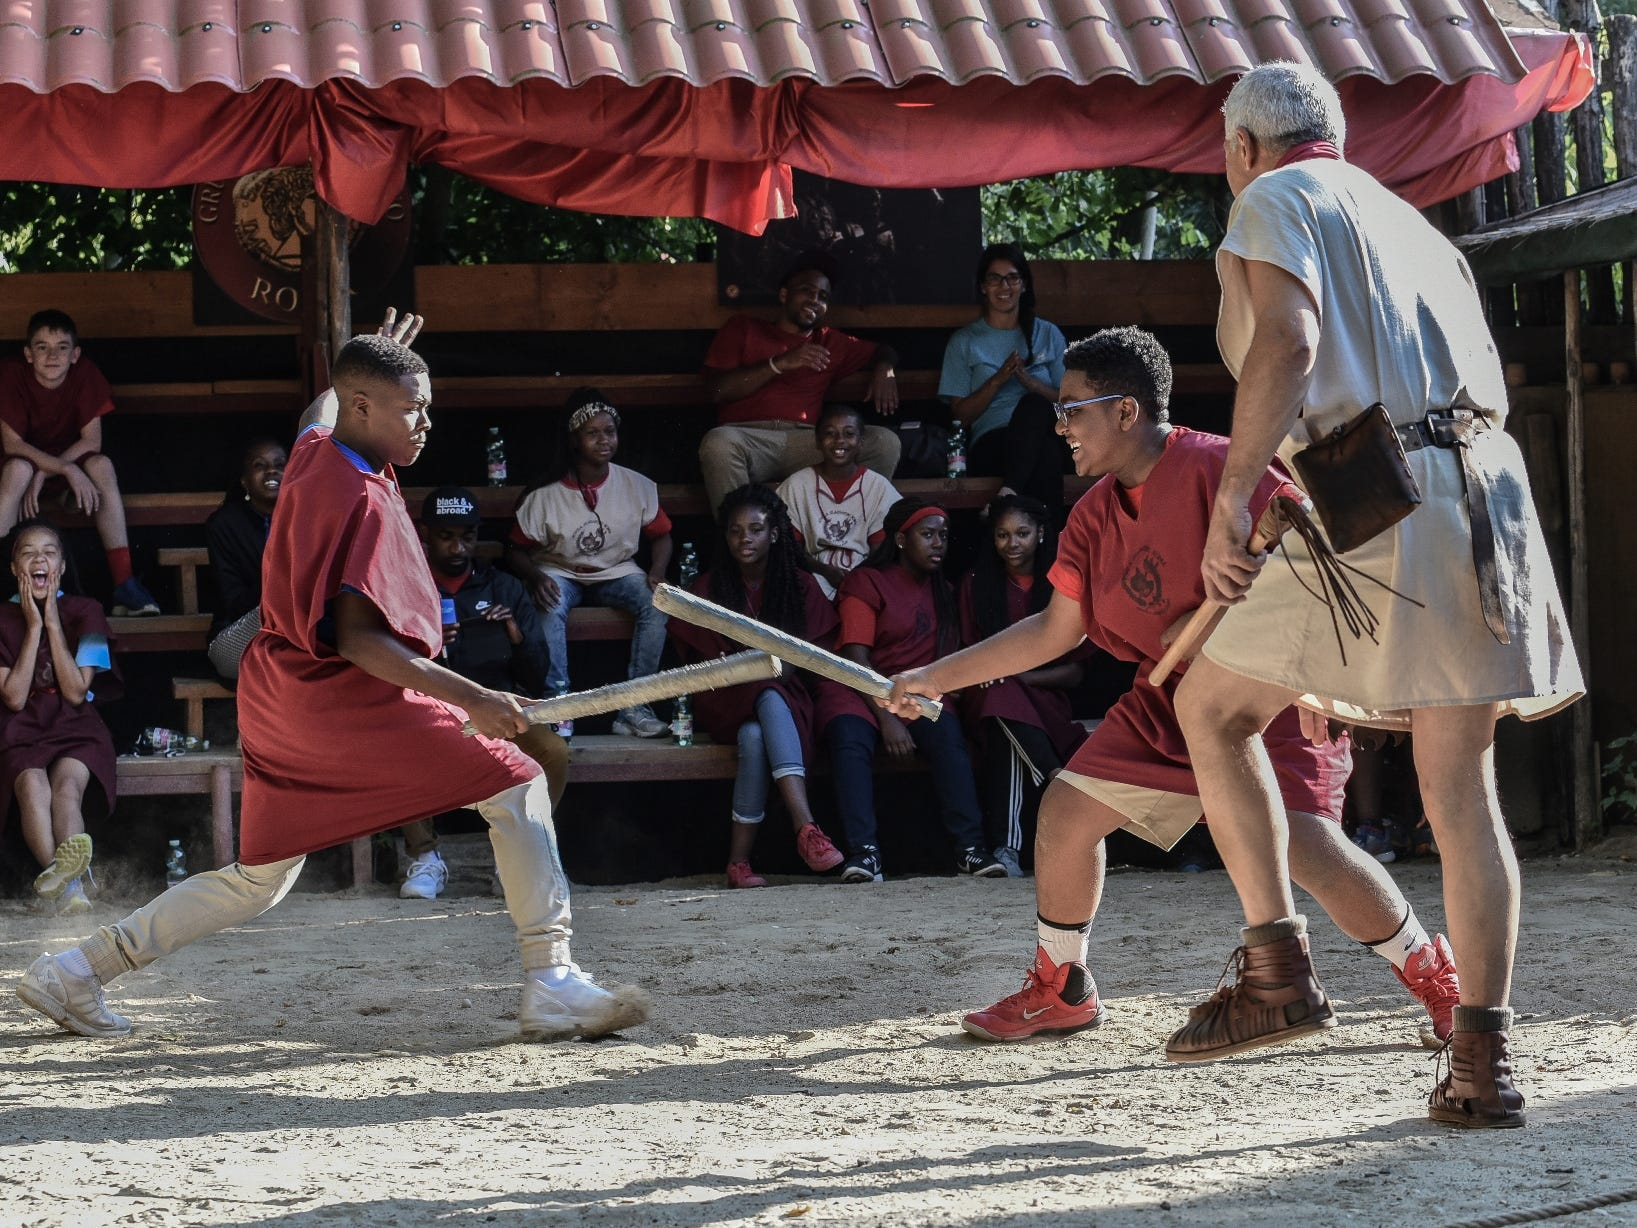 Italian history can come to life for kids at a gladiator school near Rome's Colosseum.